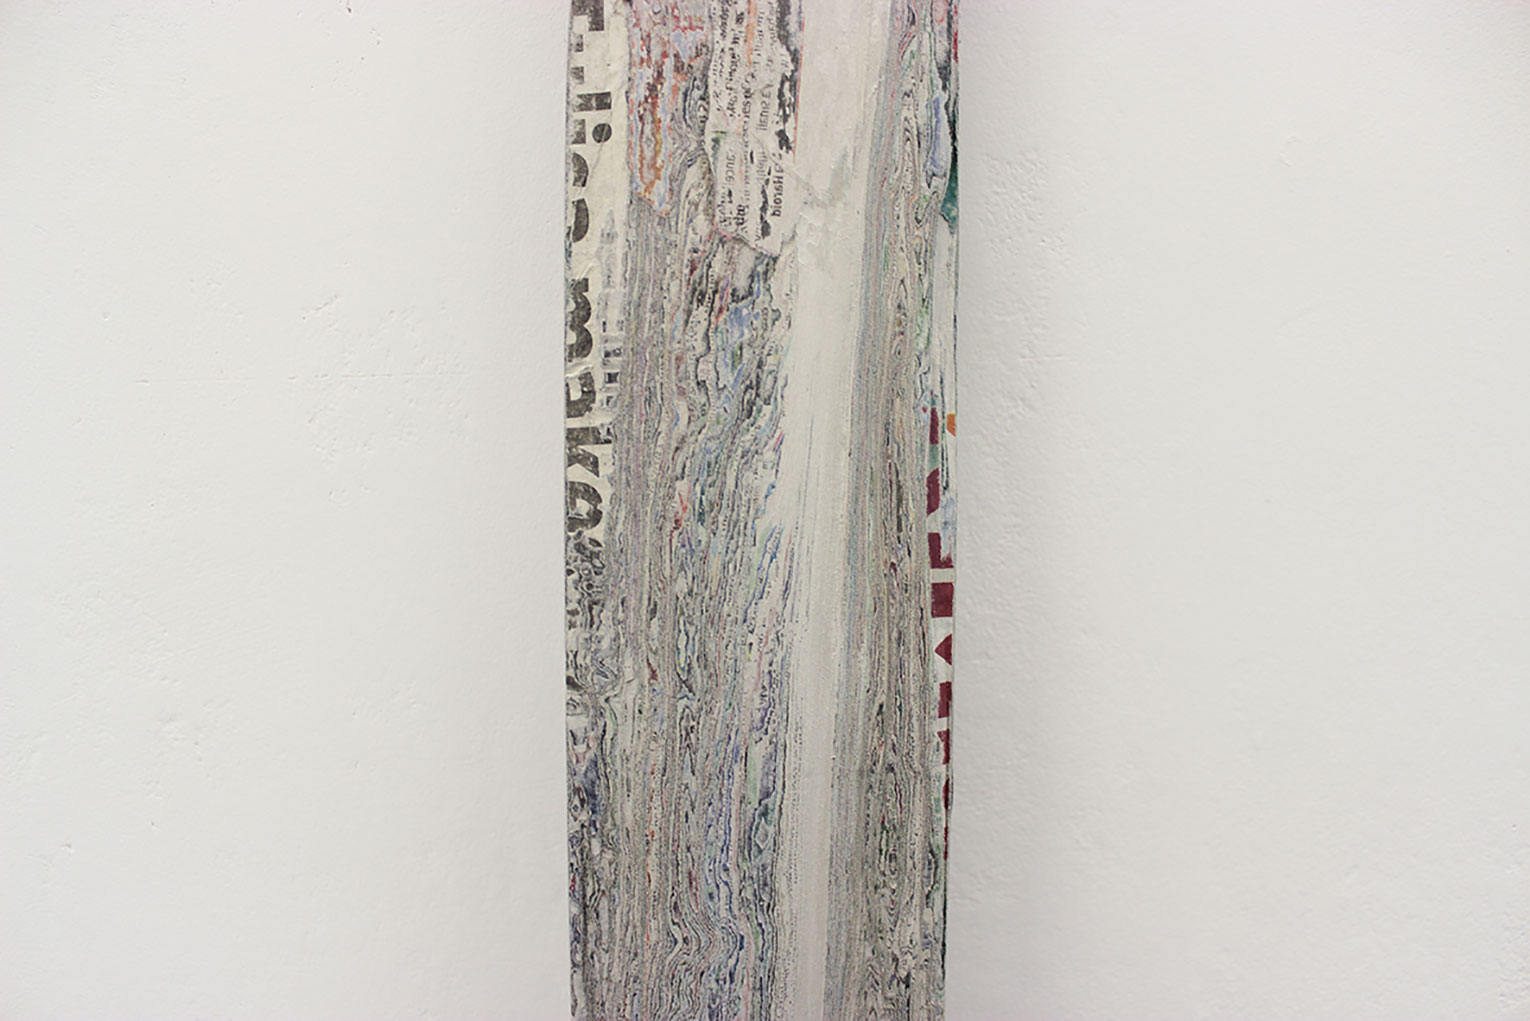 <b>Title: </b>Plank (detail)<br /><b>Year: </b>2013<br /><b>Medium: </b>Newspaper and PVA<br /><b>Size: </b>175 x 9 x 2 cm